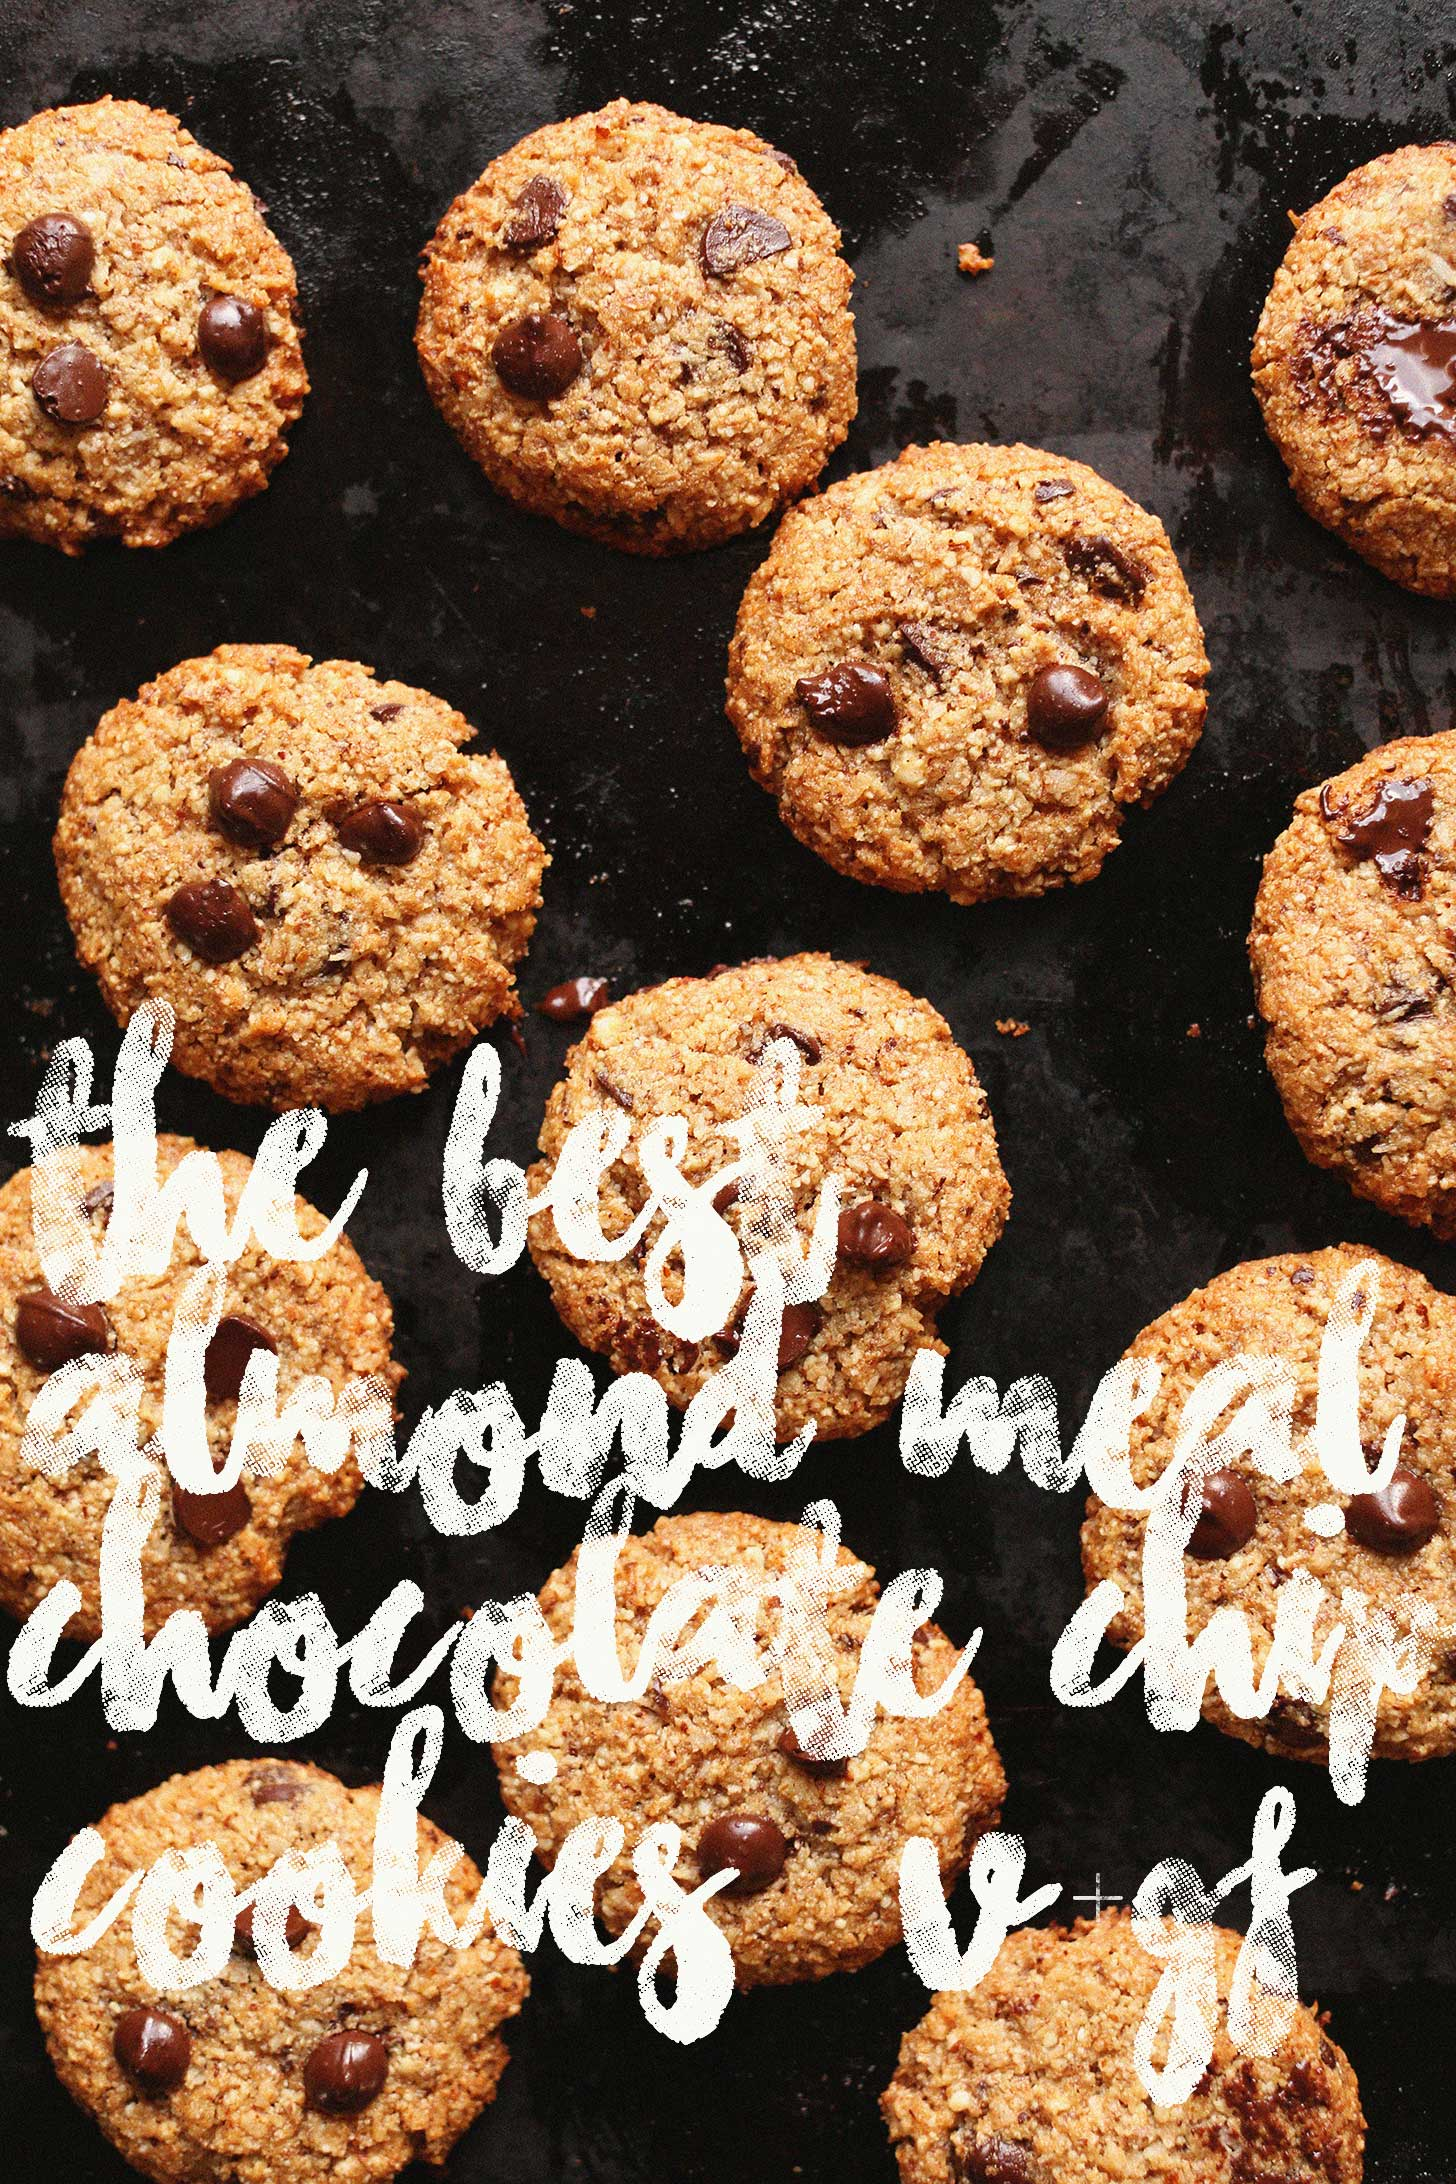 The best gluten-free and vegan Chocolate Chip Cookies on a cookie sheet